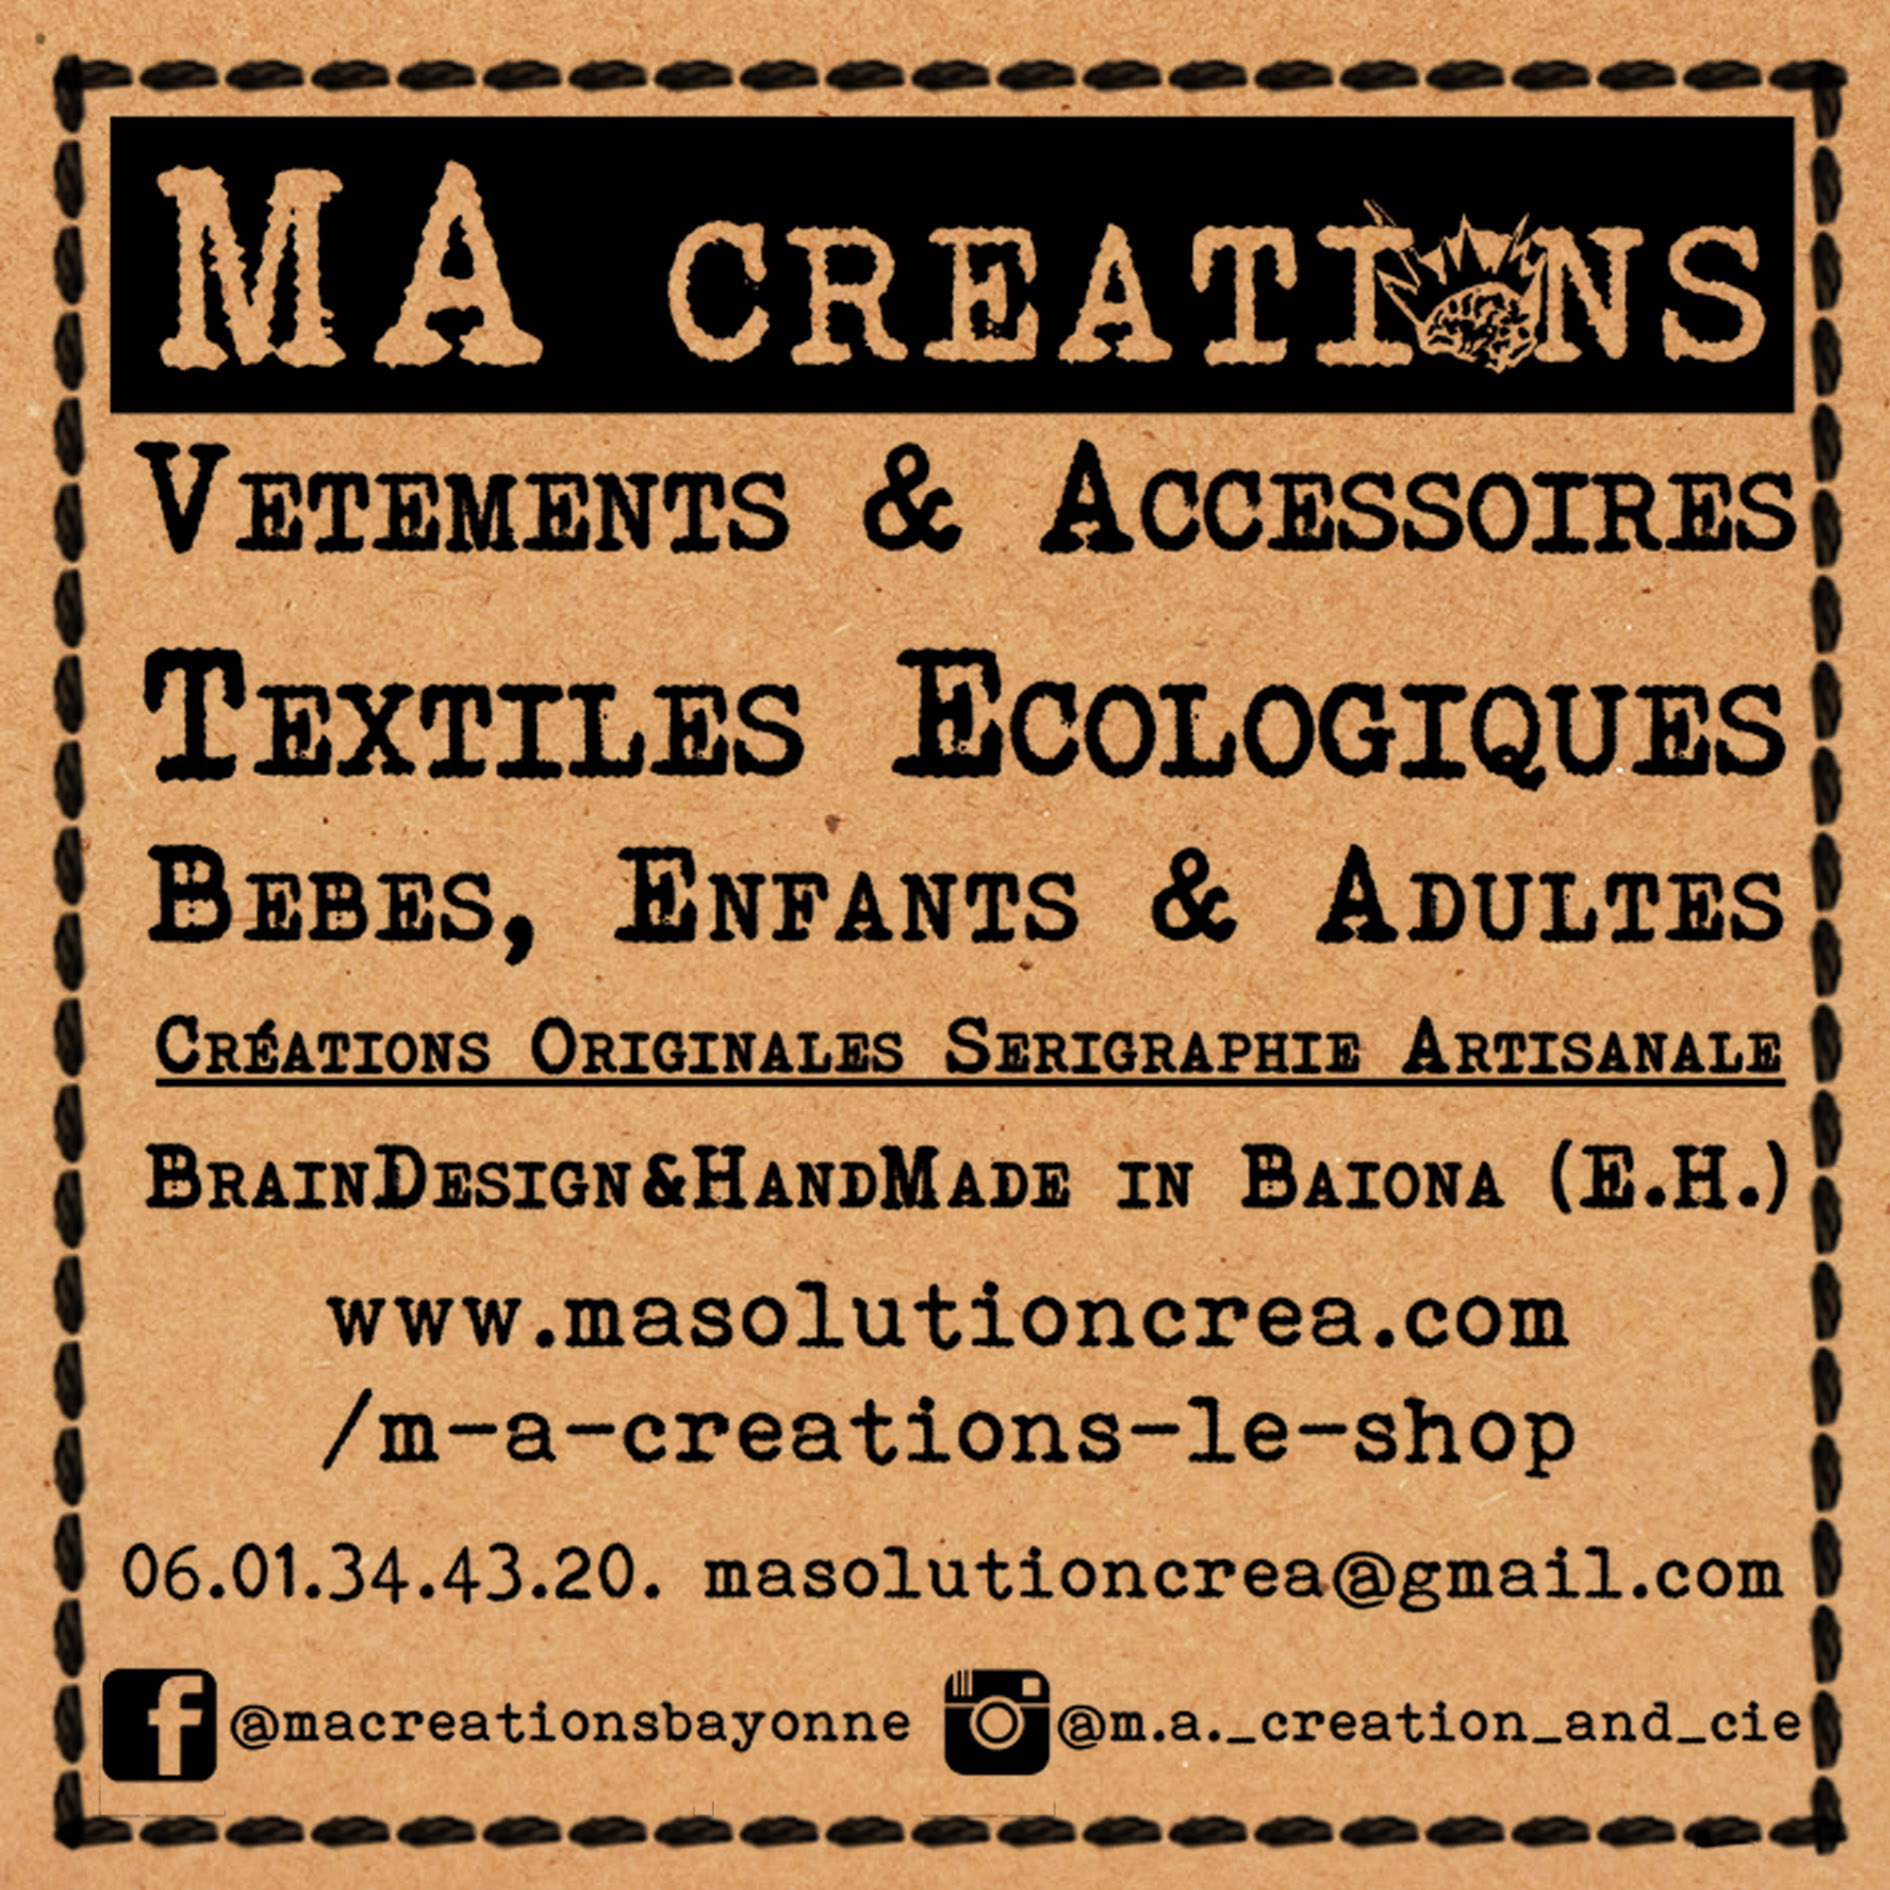 M.A. CREATIONS